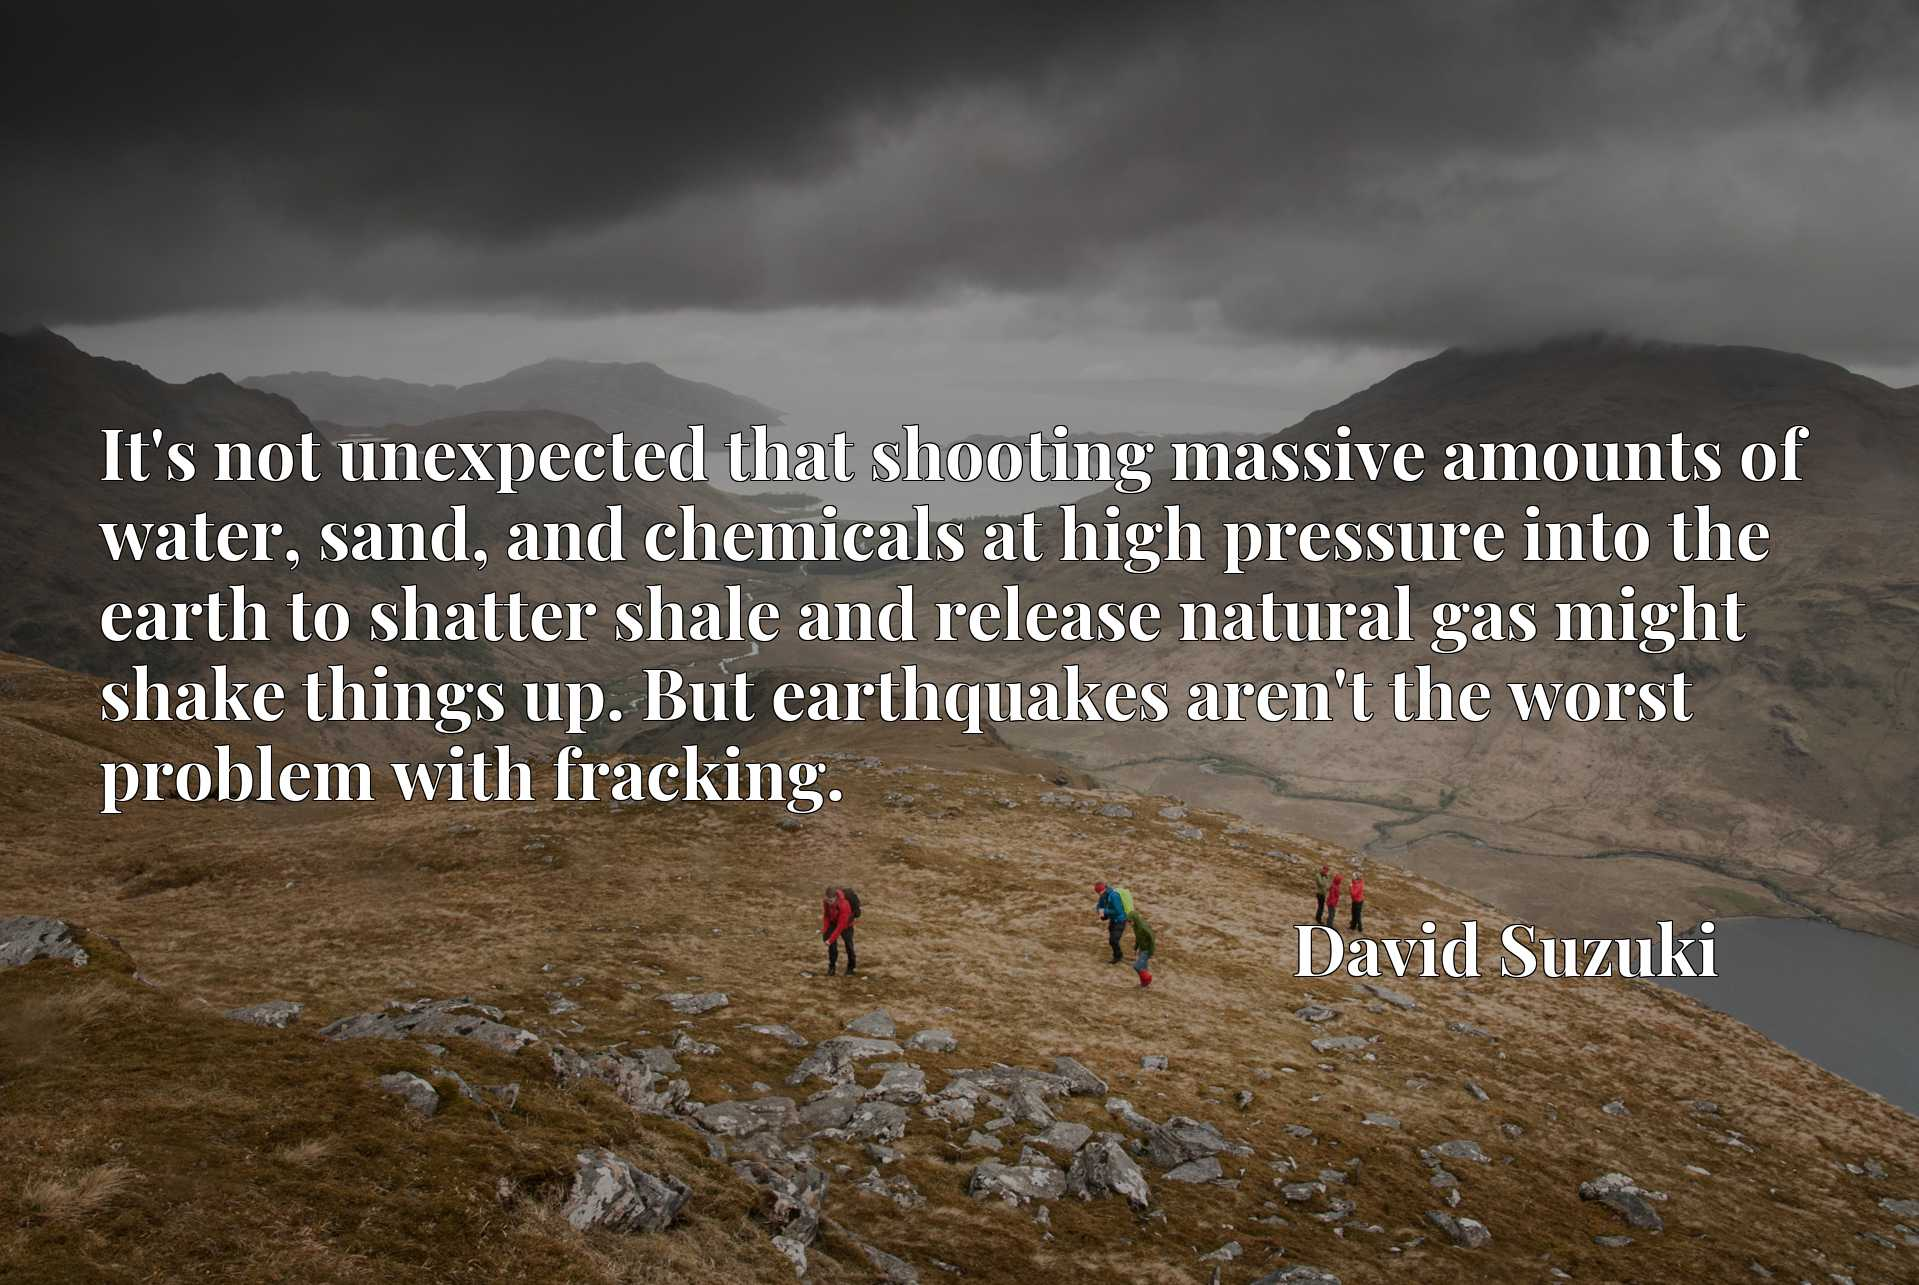 It's not unexpected that shooting massive amounts of water, sand, and chemicals at high pressure into the earth to shatter shale and release natural gas might shake things up. But earthquakes aren't the worst problem with fracking.